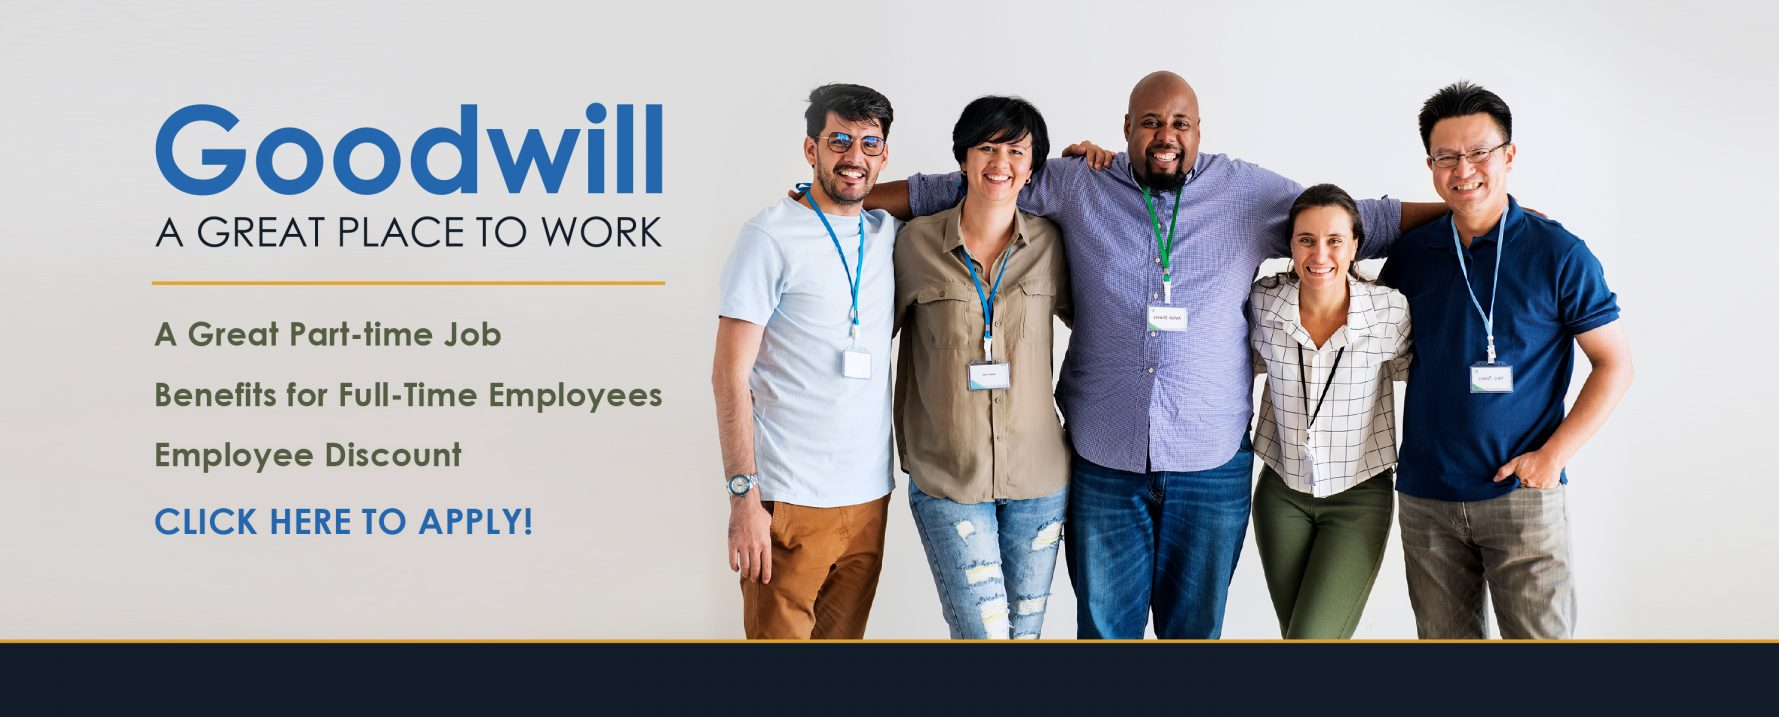 GW – A Great Place to Work